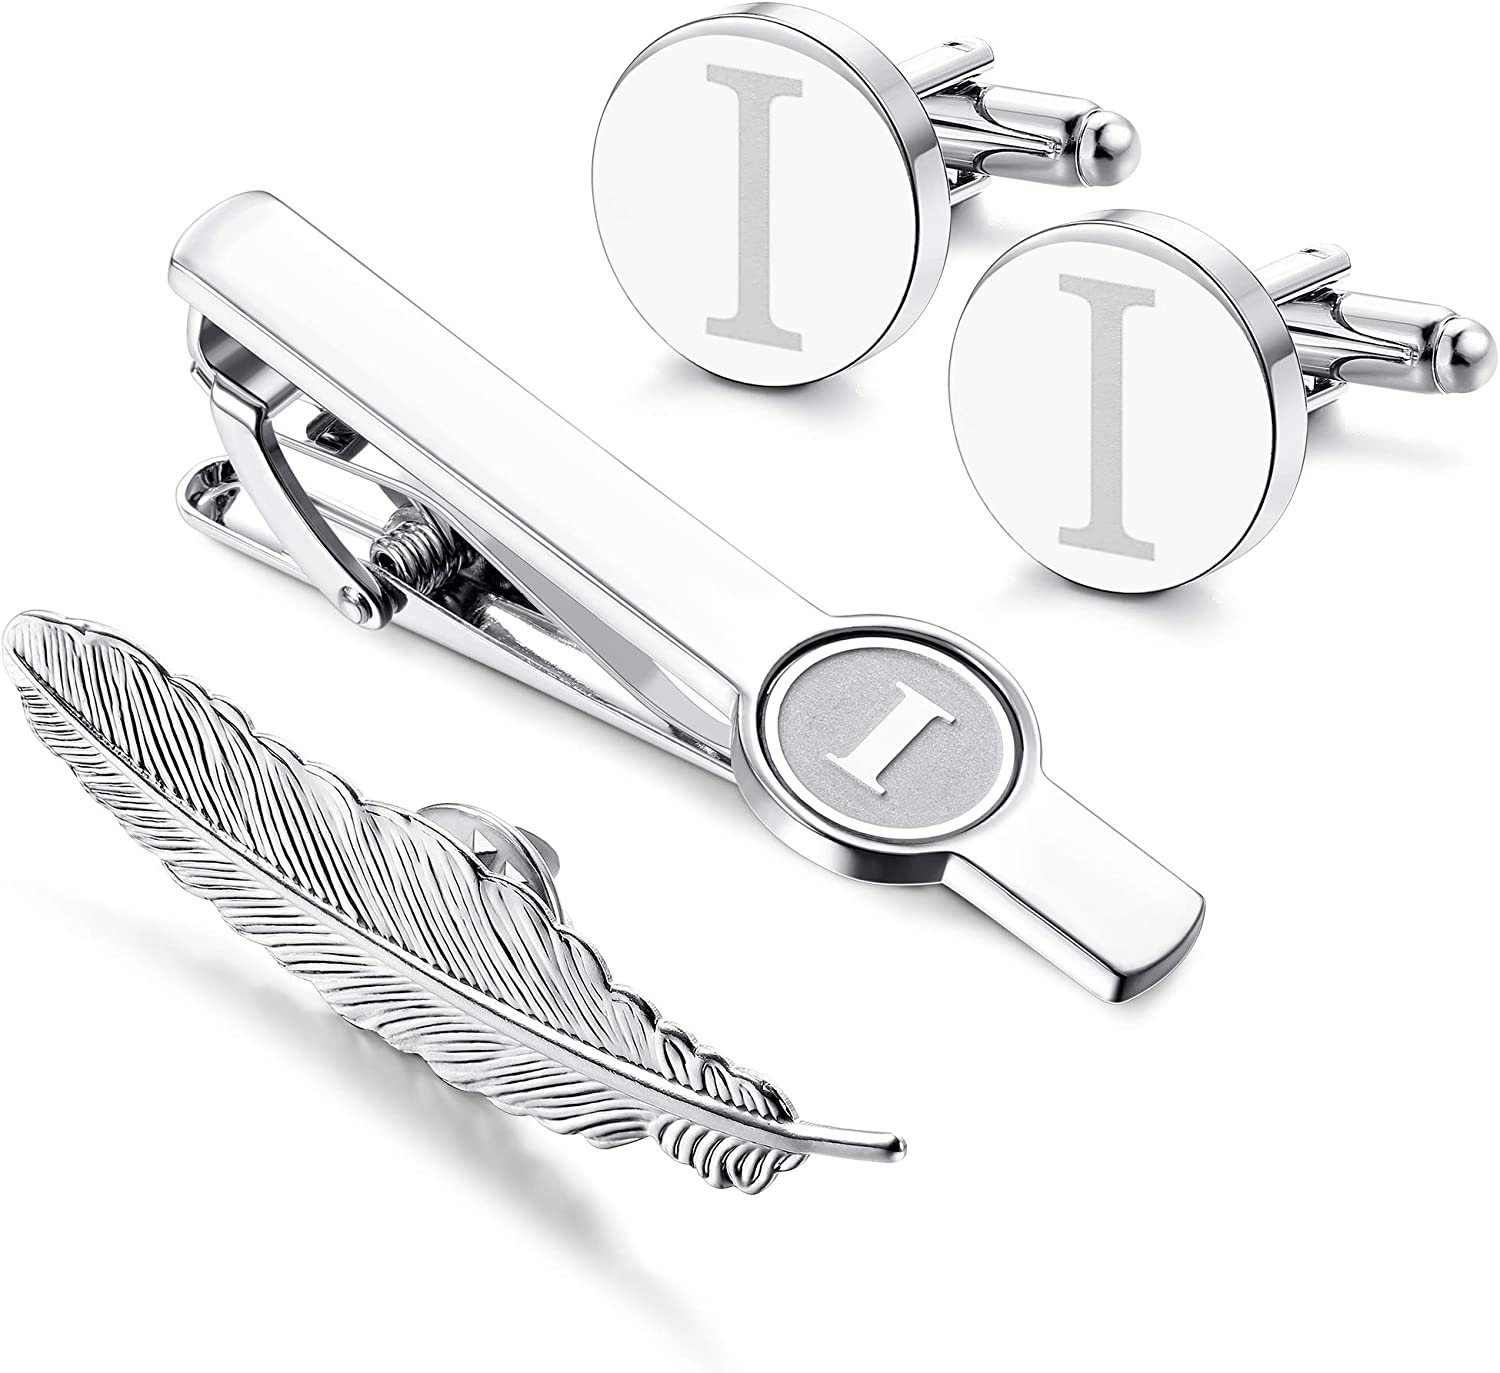 LOYALLOOK Initial Cufflinks and Tie Clip for Men Women Engraved Shirt Cufflink Alphabet A-Z Tie Bar Set for Business Wedding Gift with Box